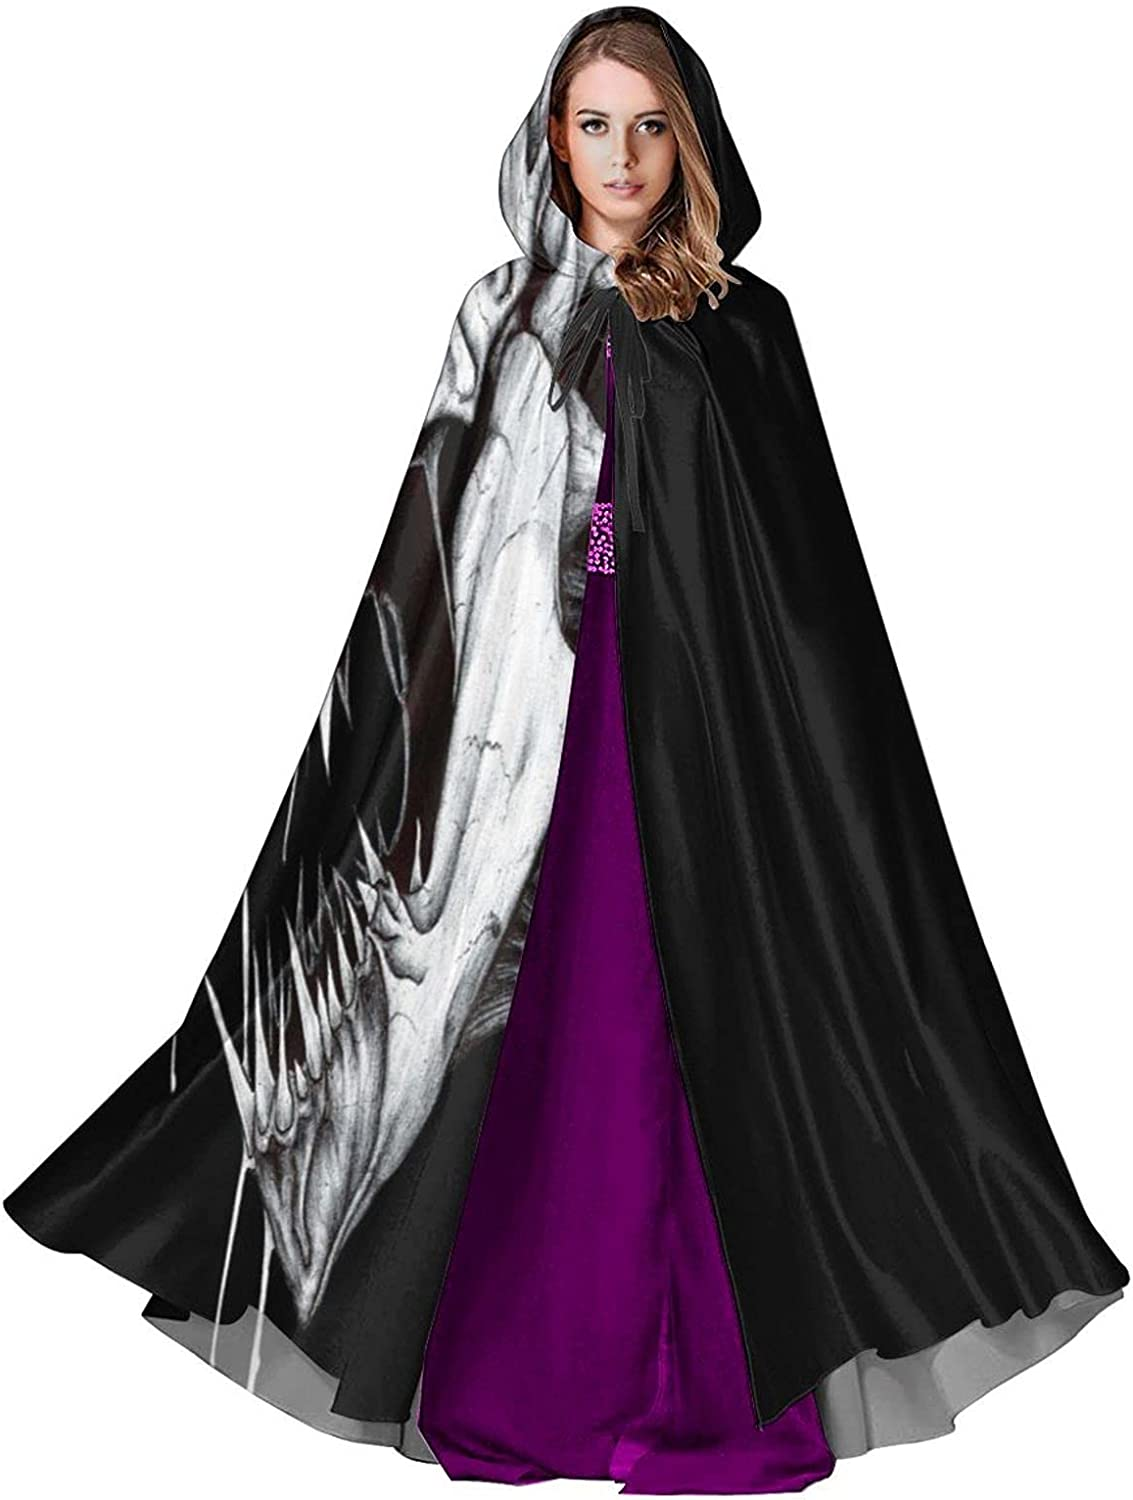 BUERYUZ Recommendation Cosplay Cloak with Hood Max 55% OFF Drooling Roaring Robe Skeletons